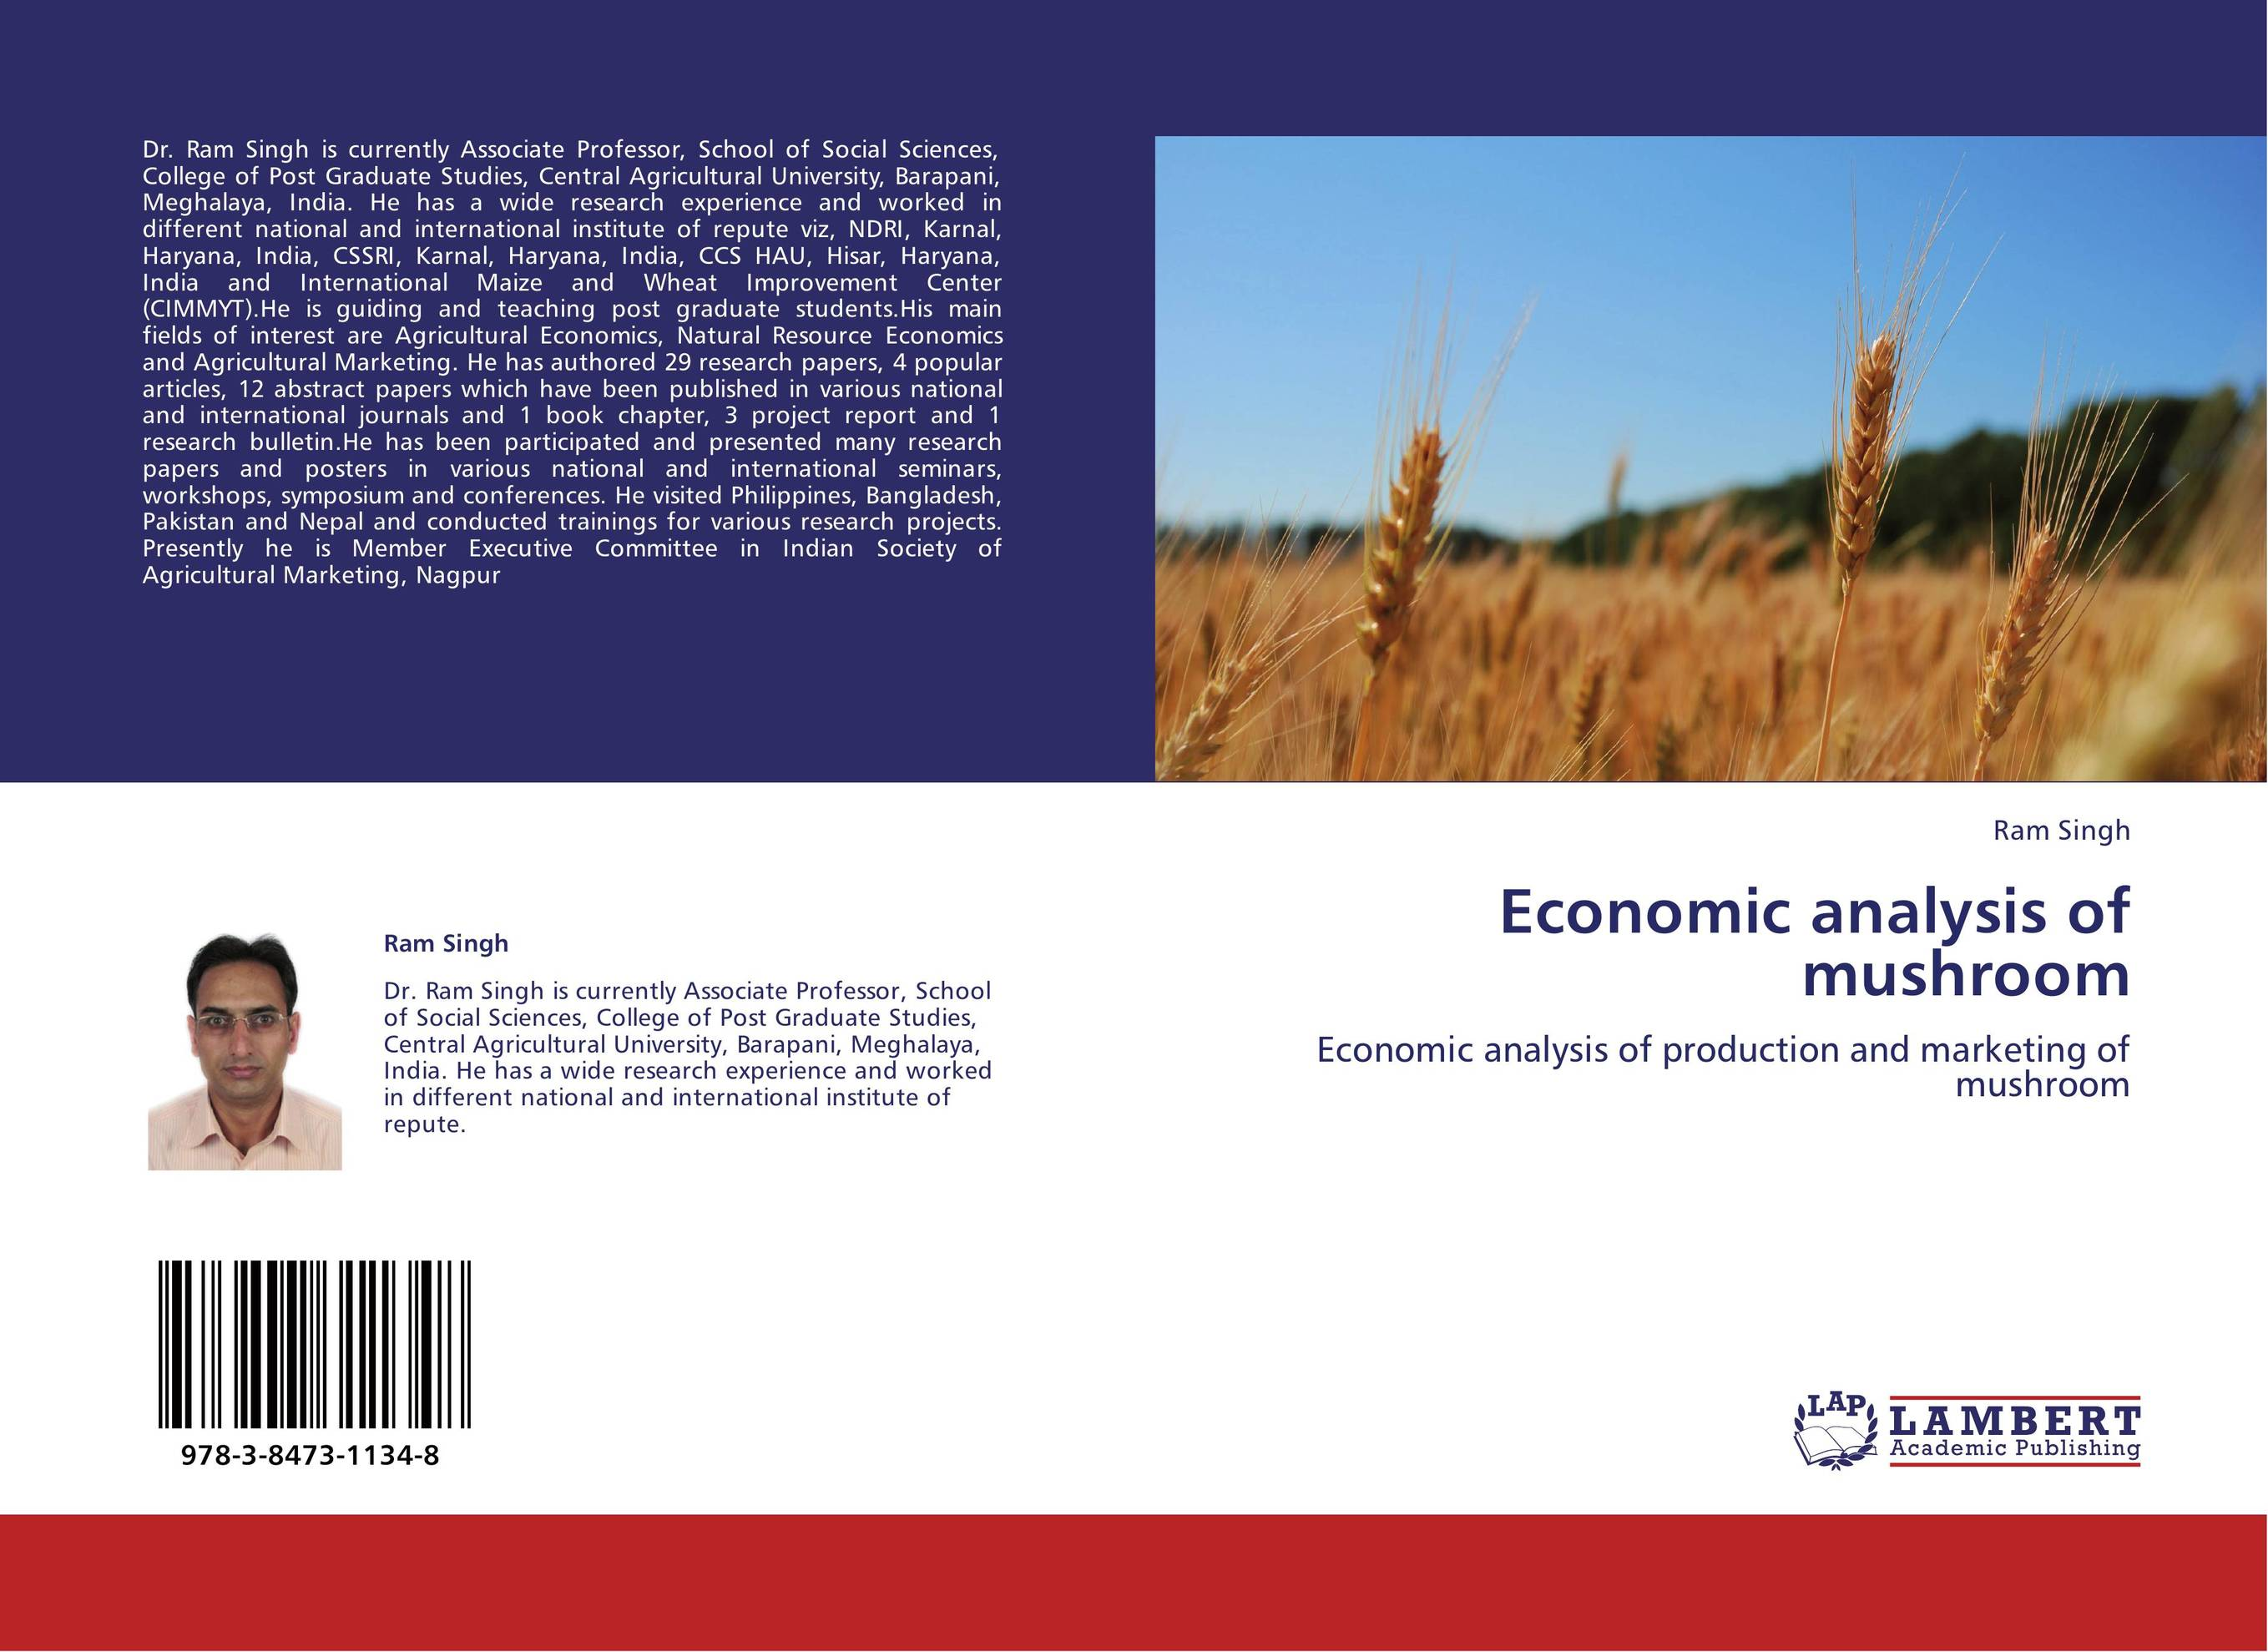 research papers on agricultural economics Recent theses below is a list of theses by master's students in agricultural economics view complete list of theses and dissertations from the department of agricultural economics on the k-state research exchange.